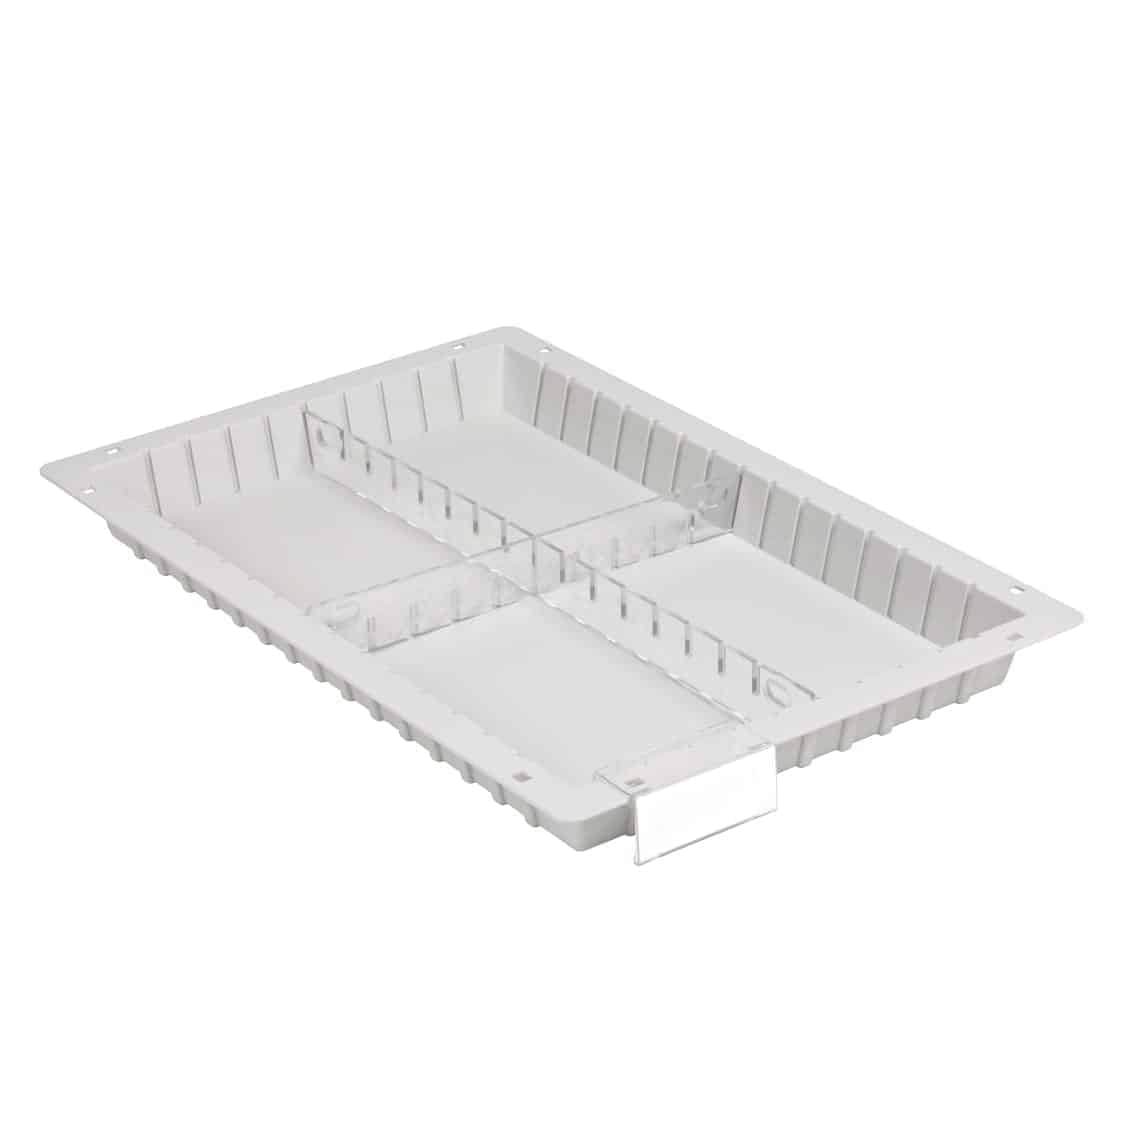 ABS dividable tray (Shallow)